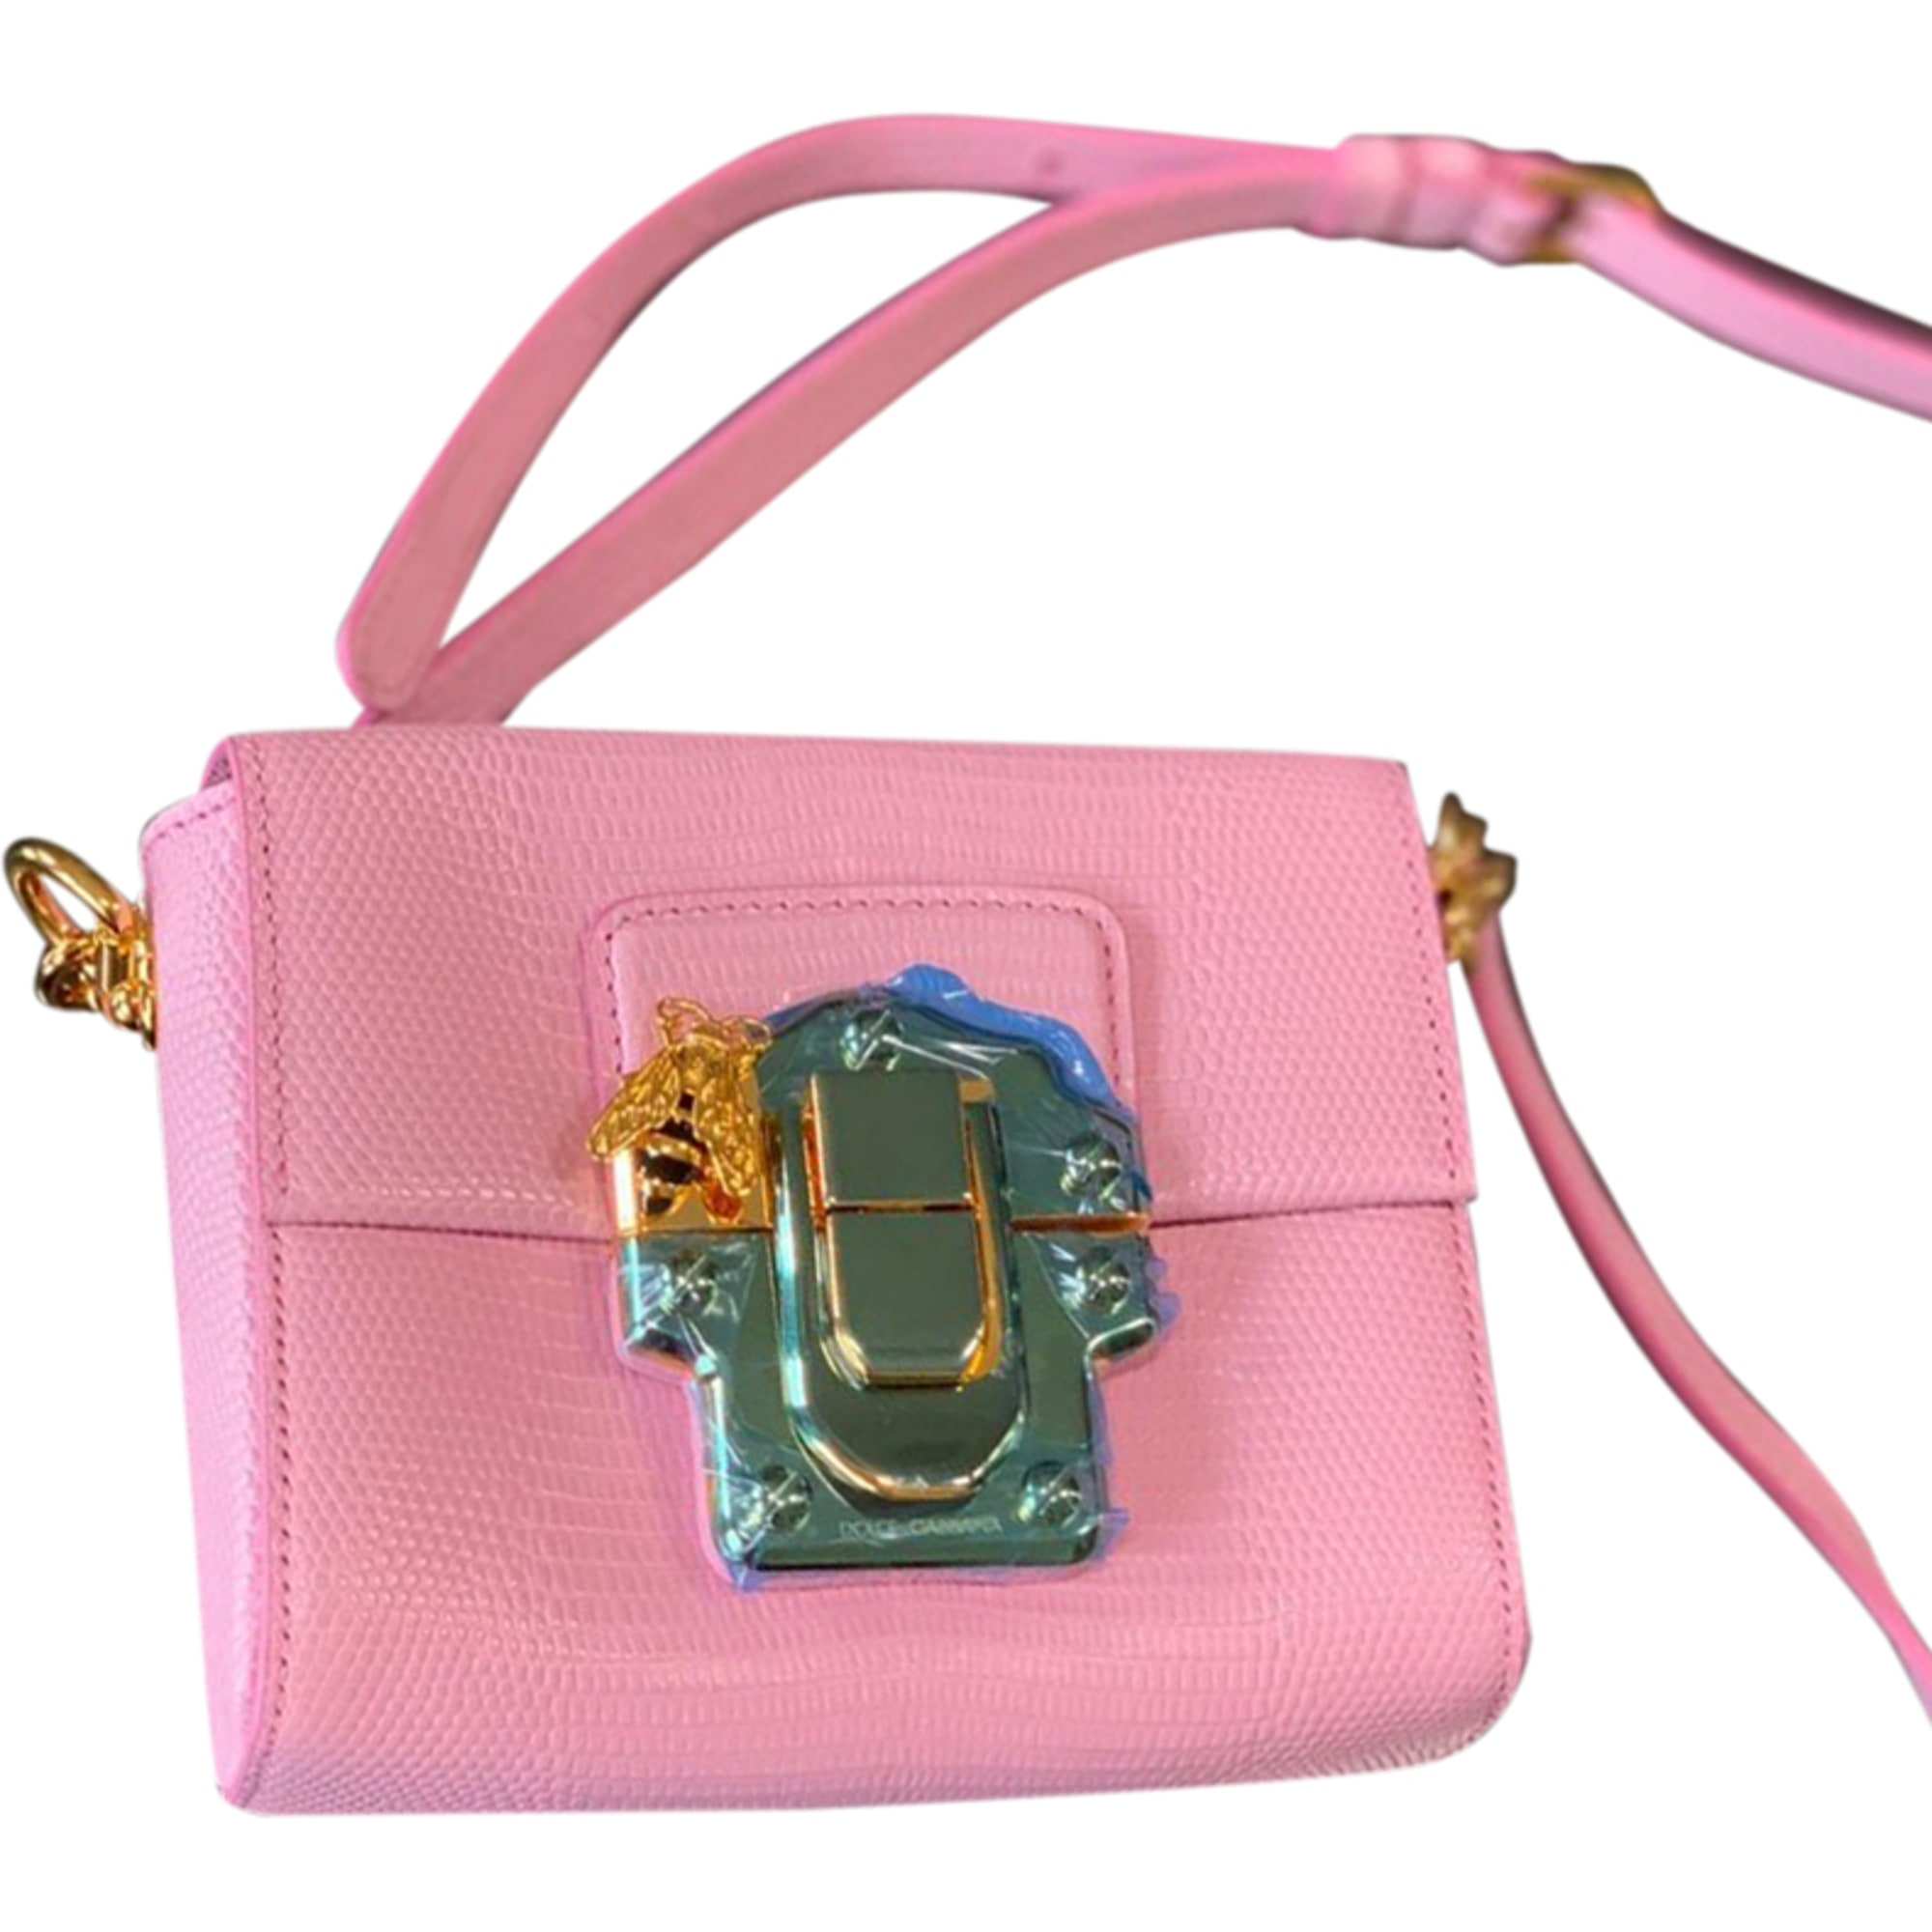 Leather Clutch DOLCE & GABBANA Pink, fuchsia, light pink